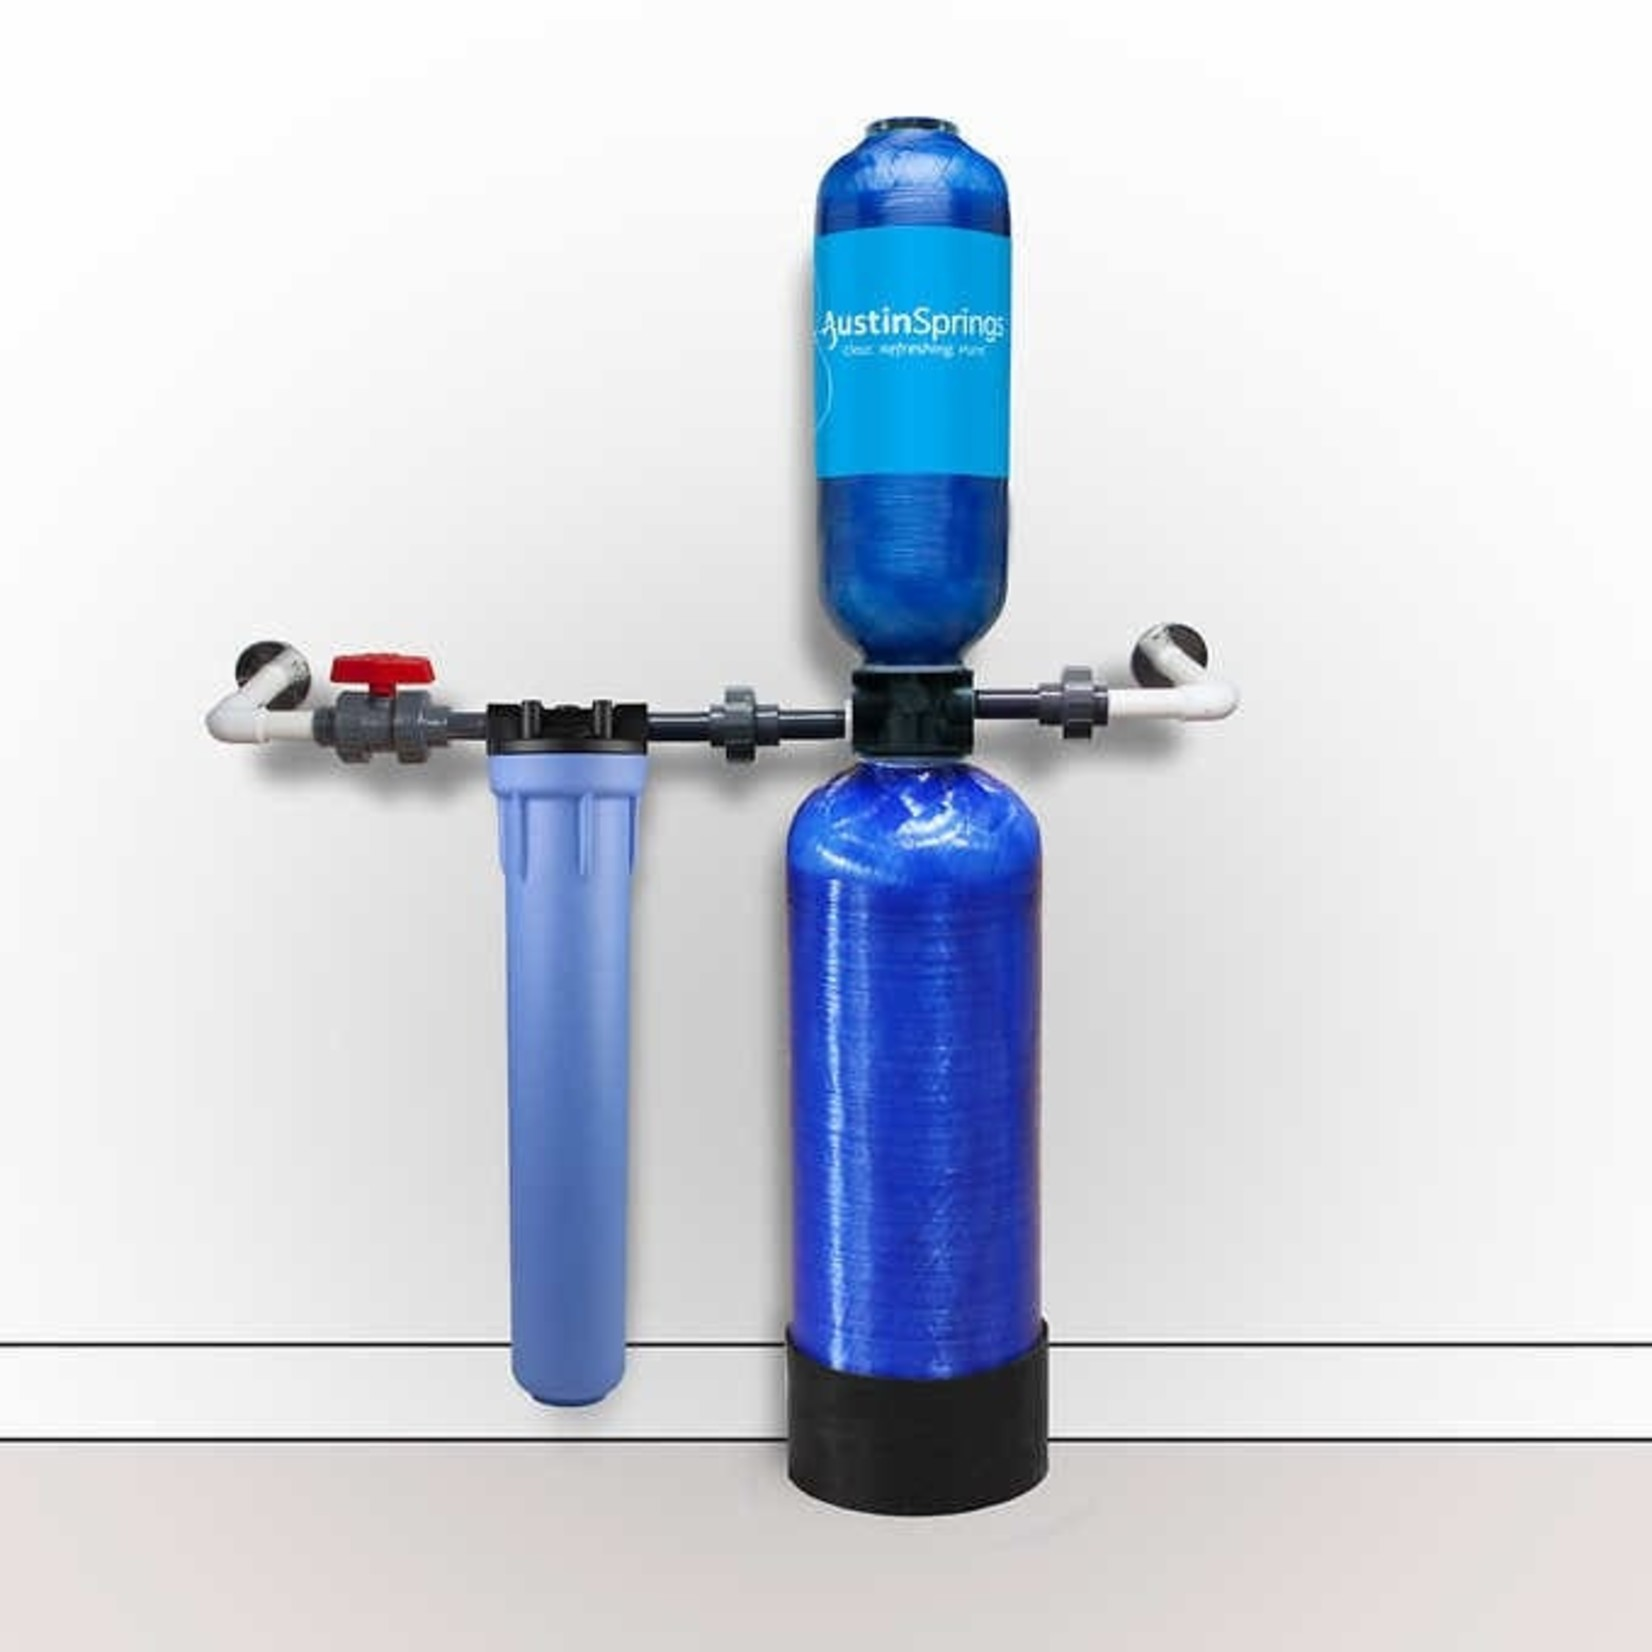 Austin Springs 10-year Whole House Filtration System AS-1000